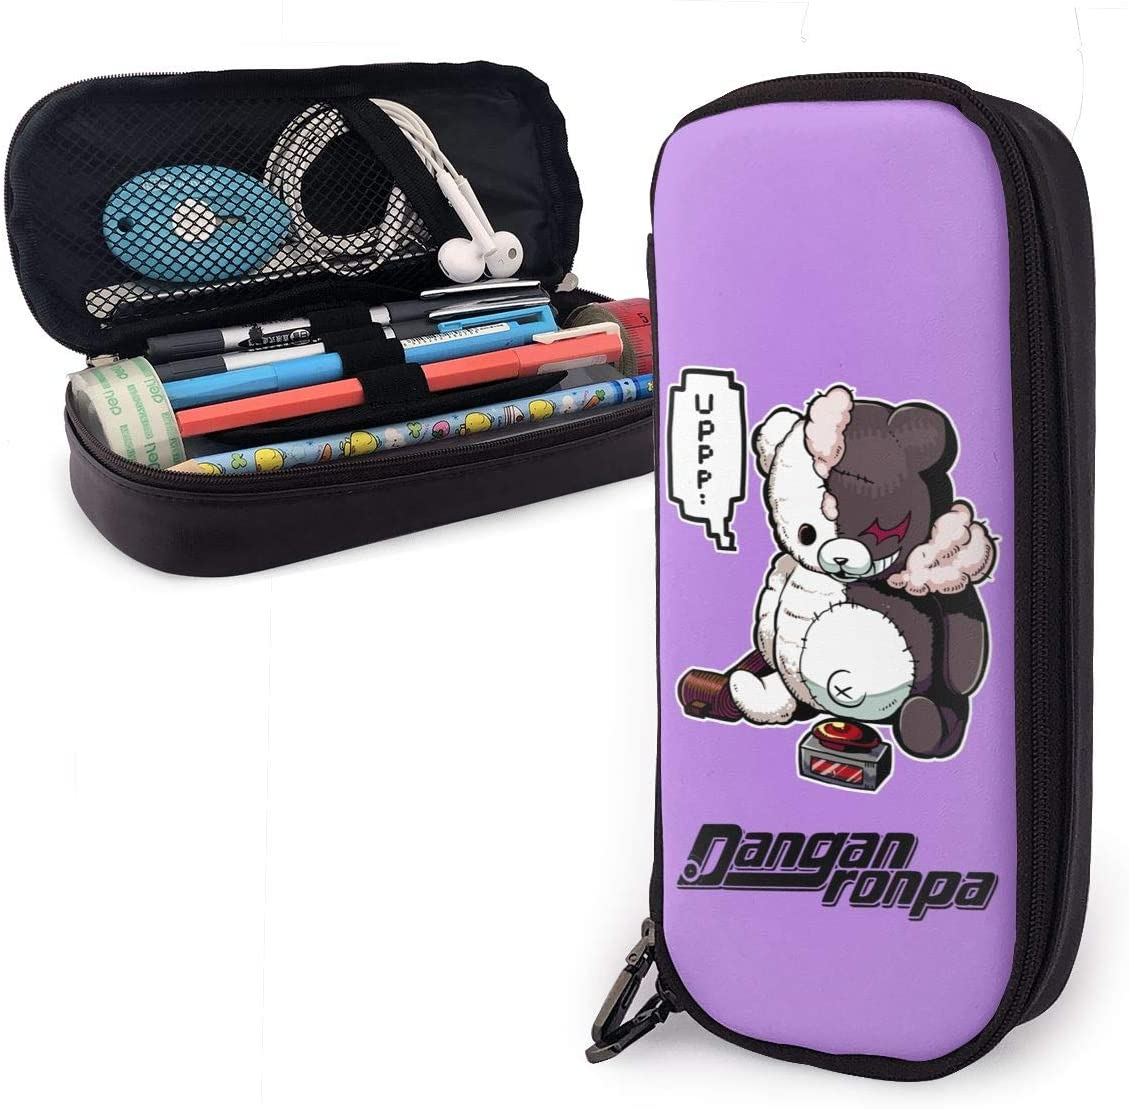 Danganronpa Anime Pencil Case,Multifunction PU Leather Pencil Case with Zipper Closure,Carrying Case for School Supplies Office Stuff